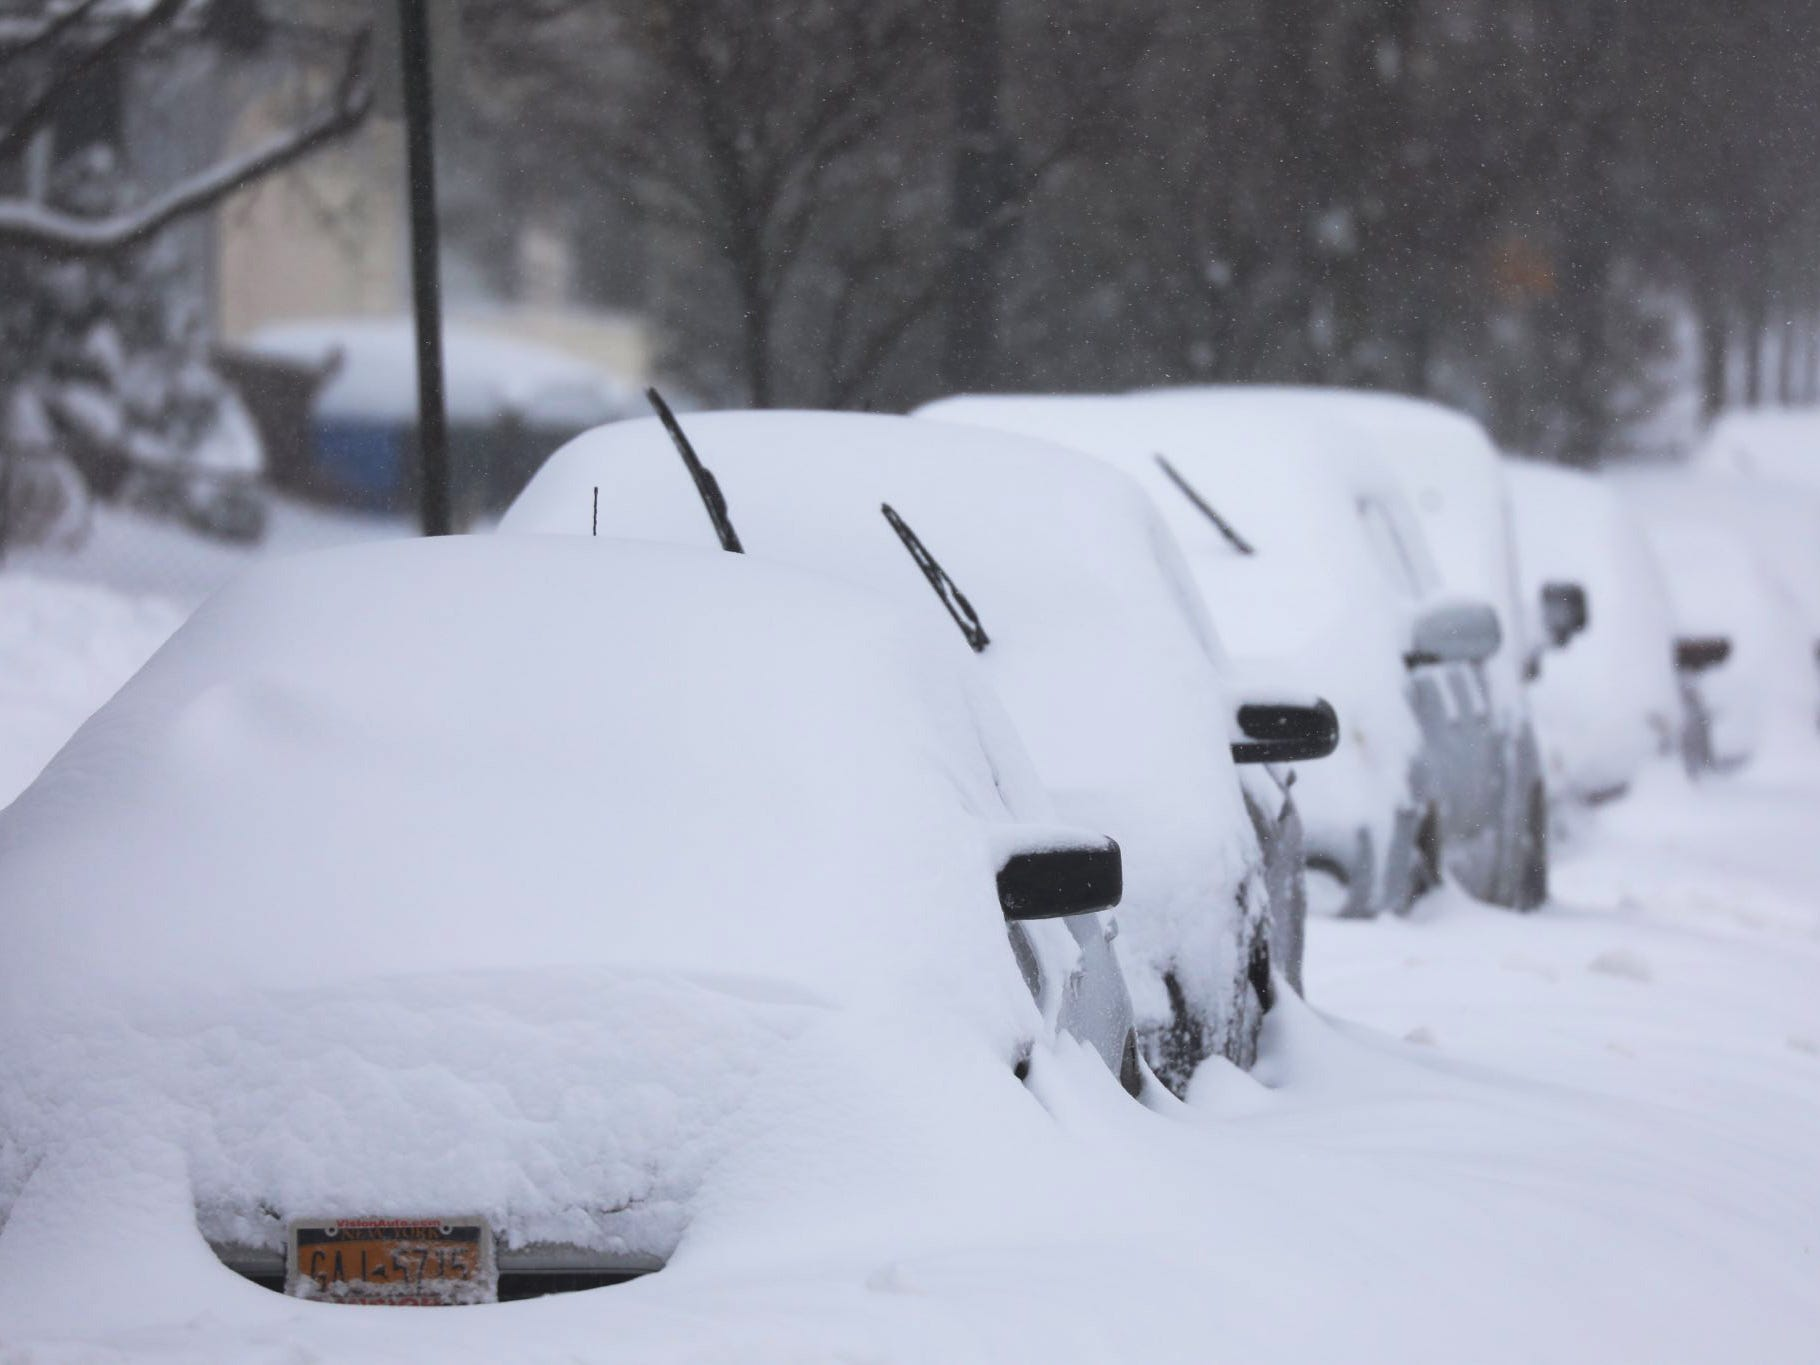 A familiar sight in Rochester today: Cars buried in snow.